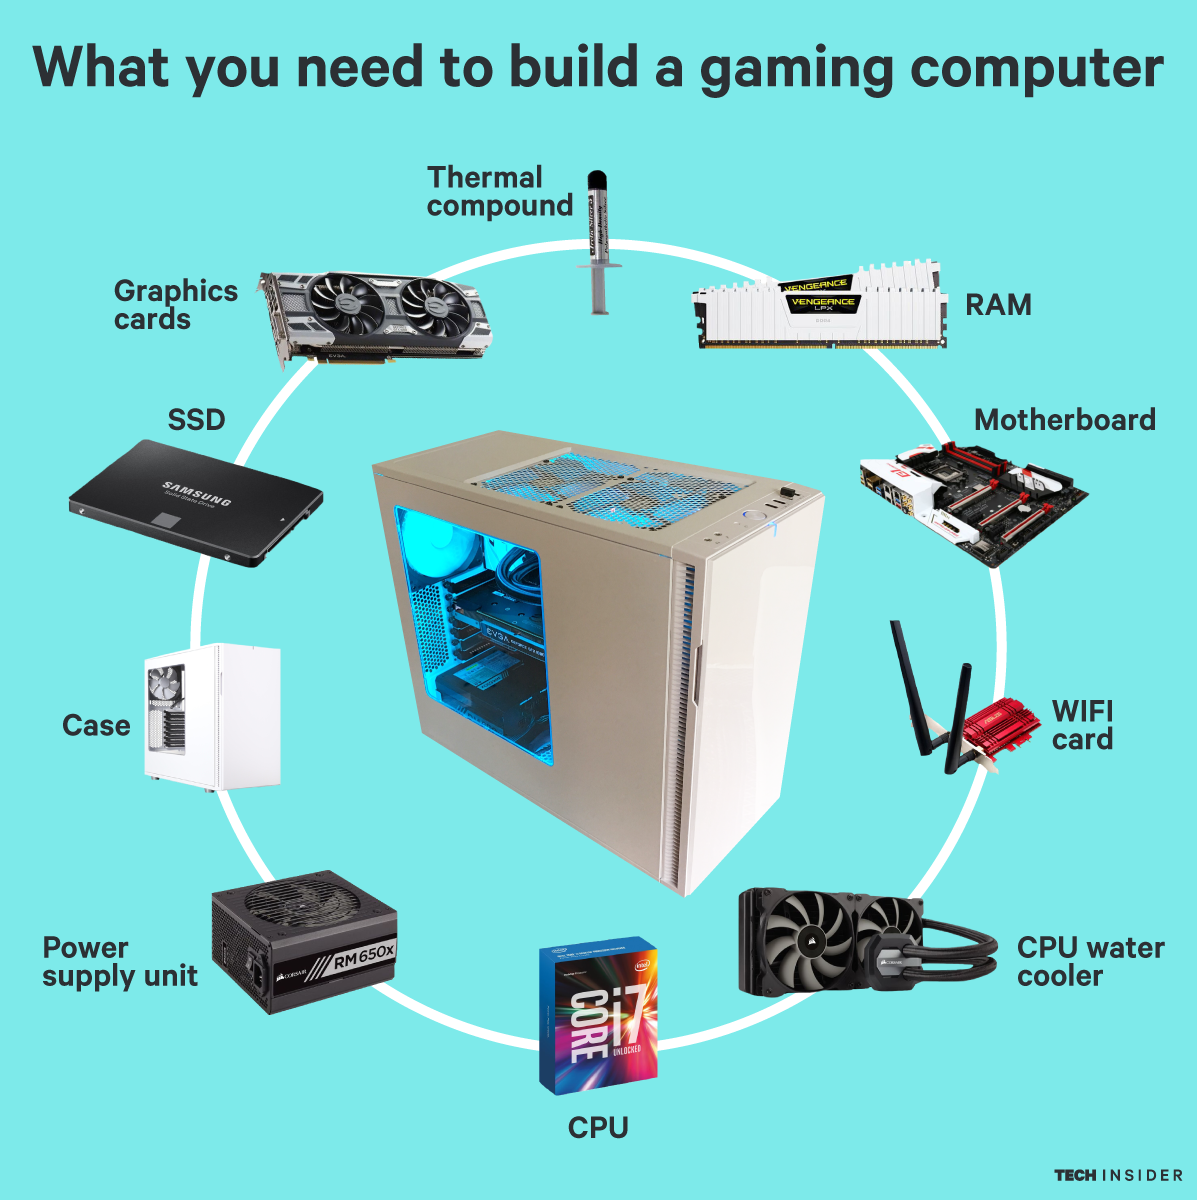 I Built My Own Pc And It Was Super Easy Heres How To Do New Build A Computer Building Your The Step By Gaming Is Not Scary At All Plus Youll End Up Saving More Money Than If You Bought From Someone Else